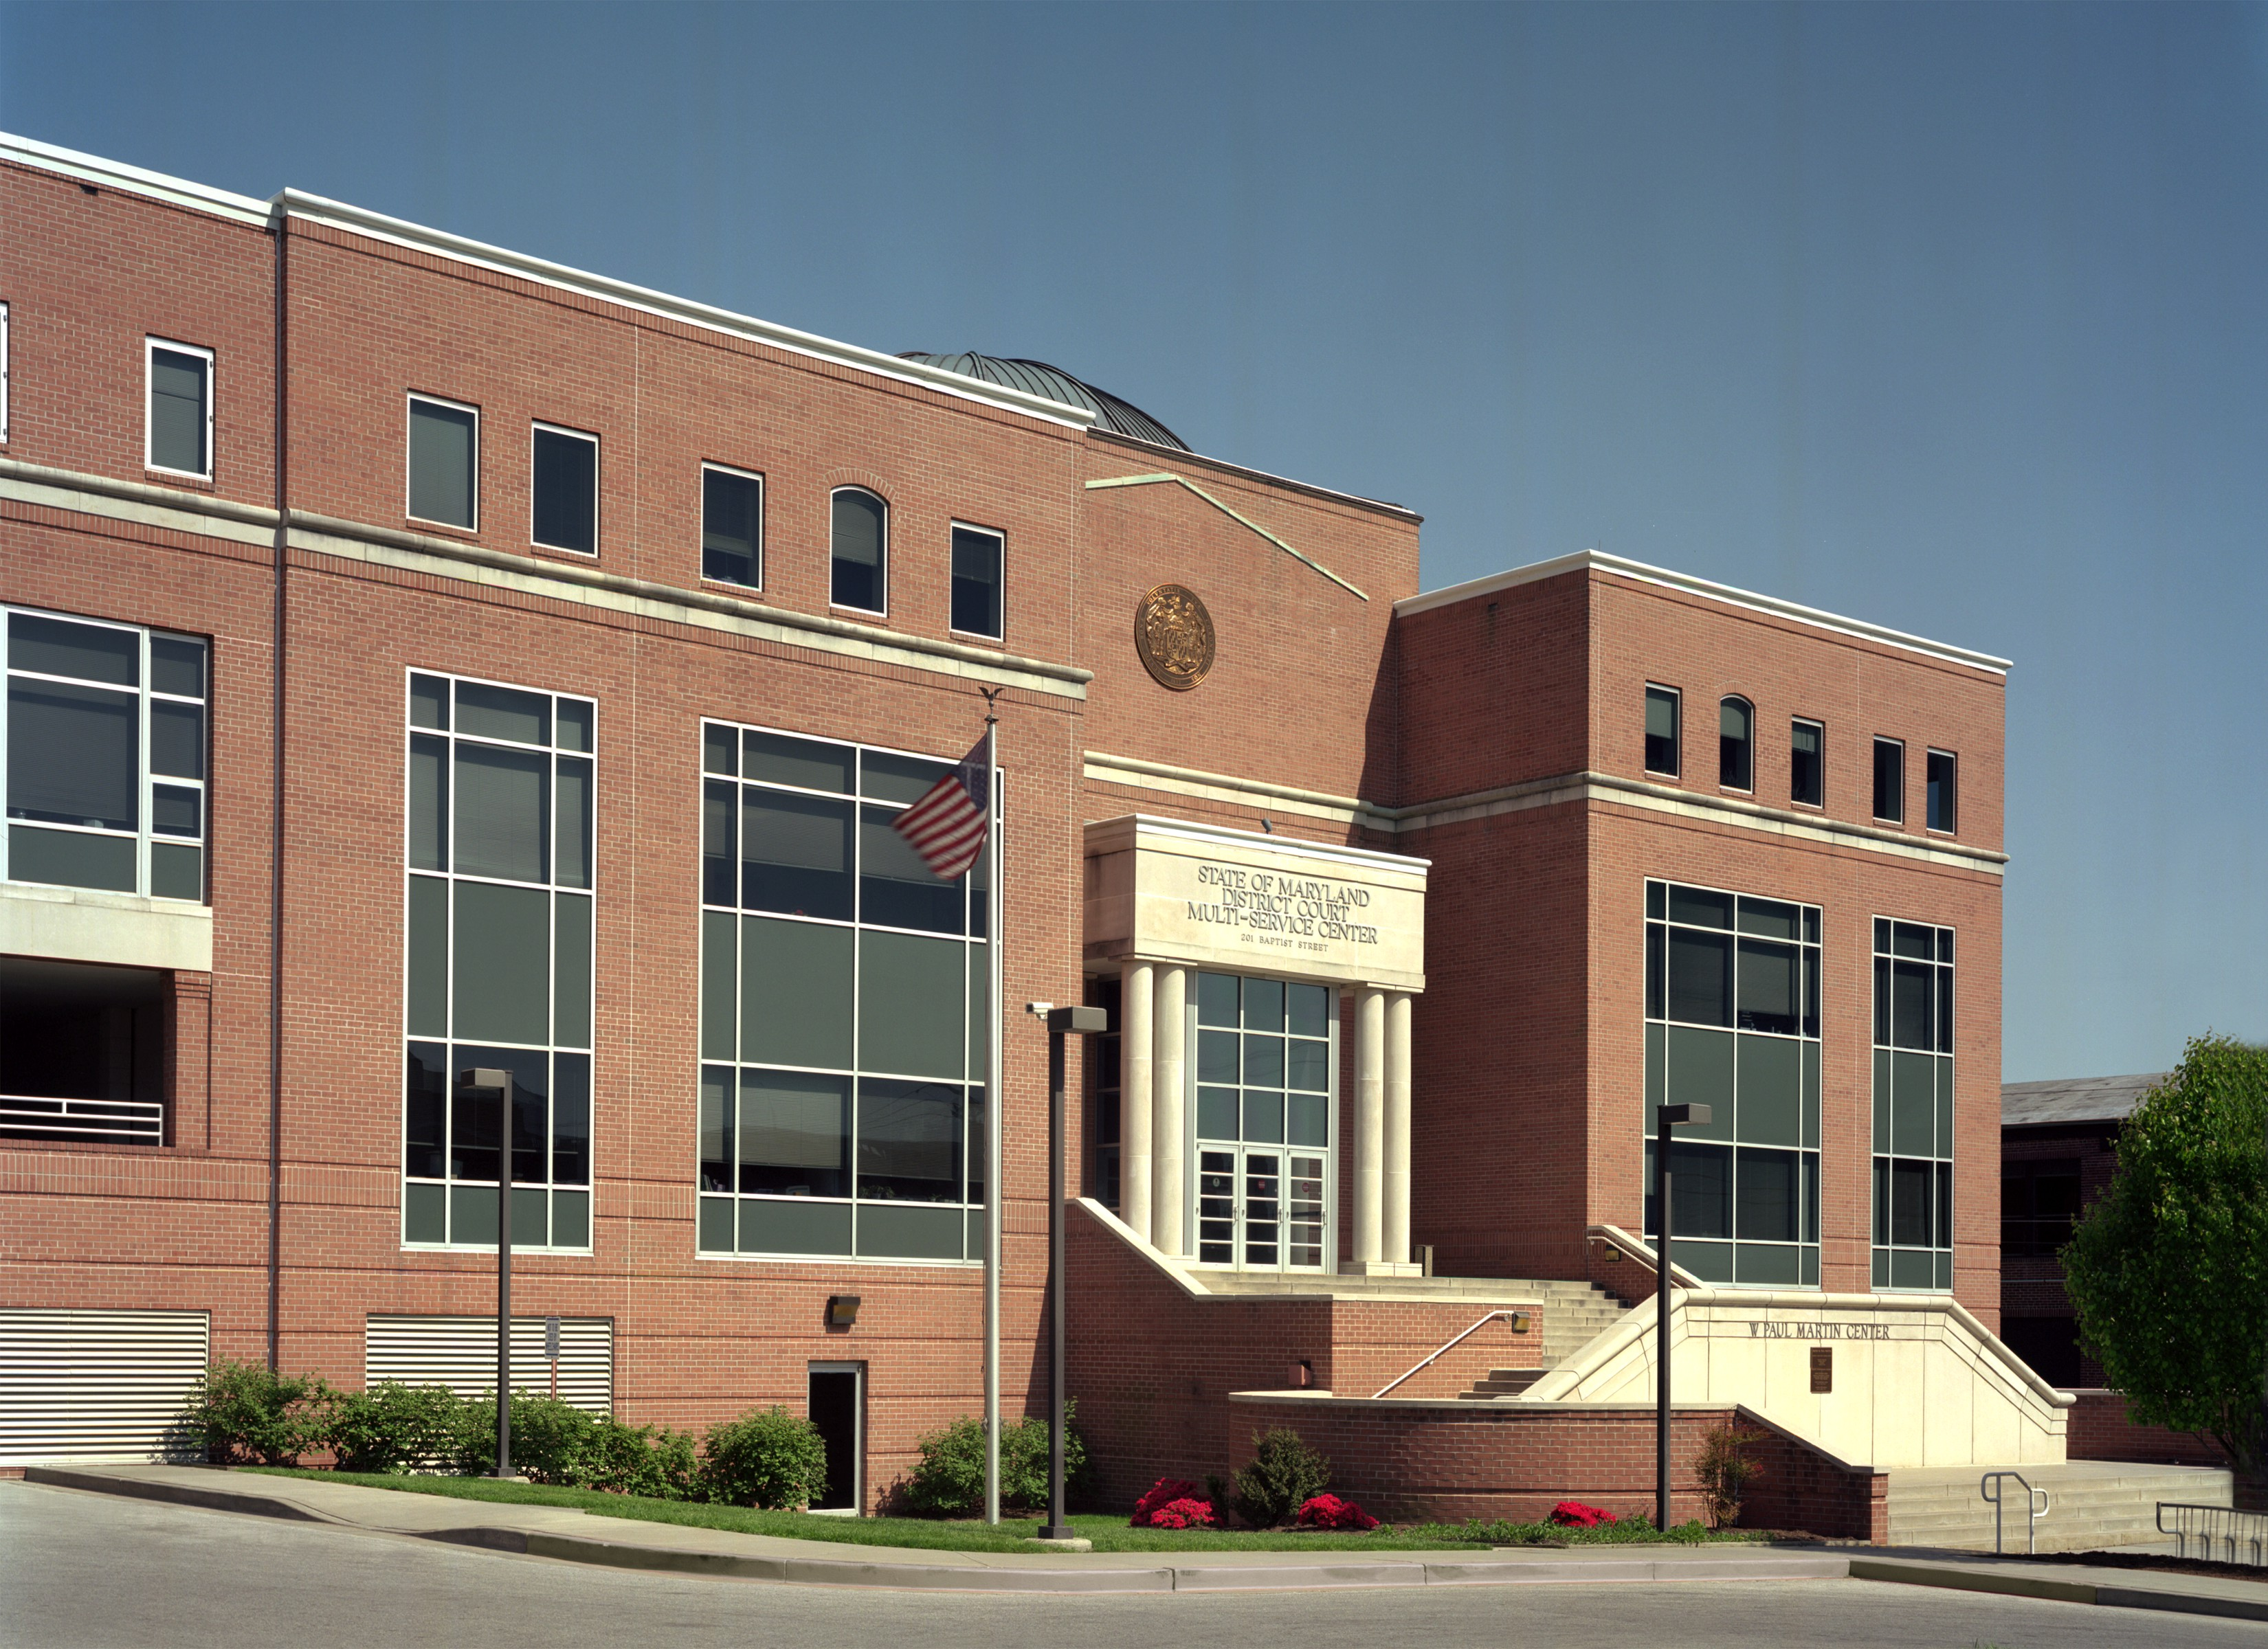 Wicomico County District Court